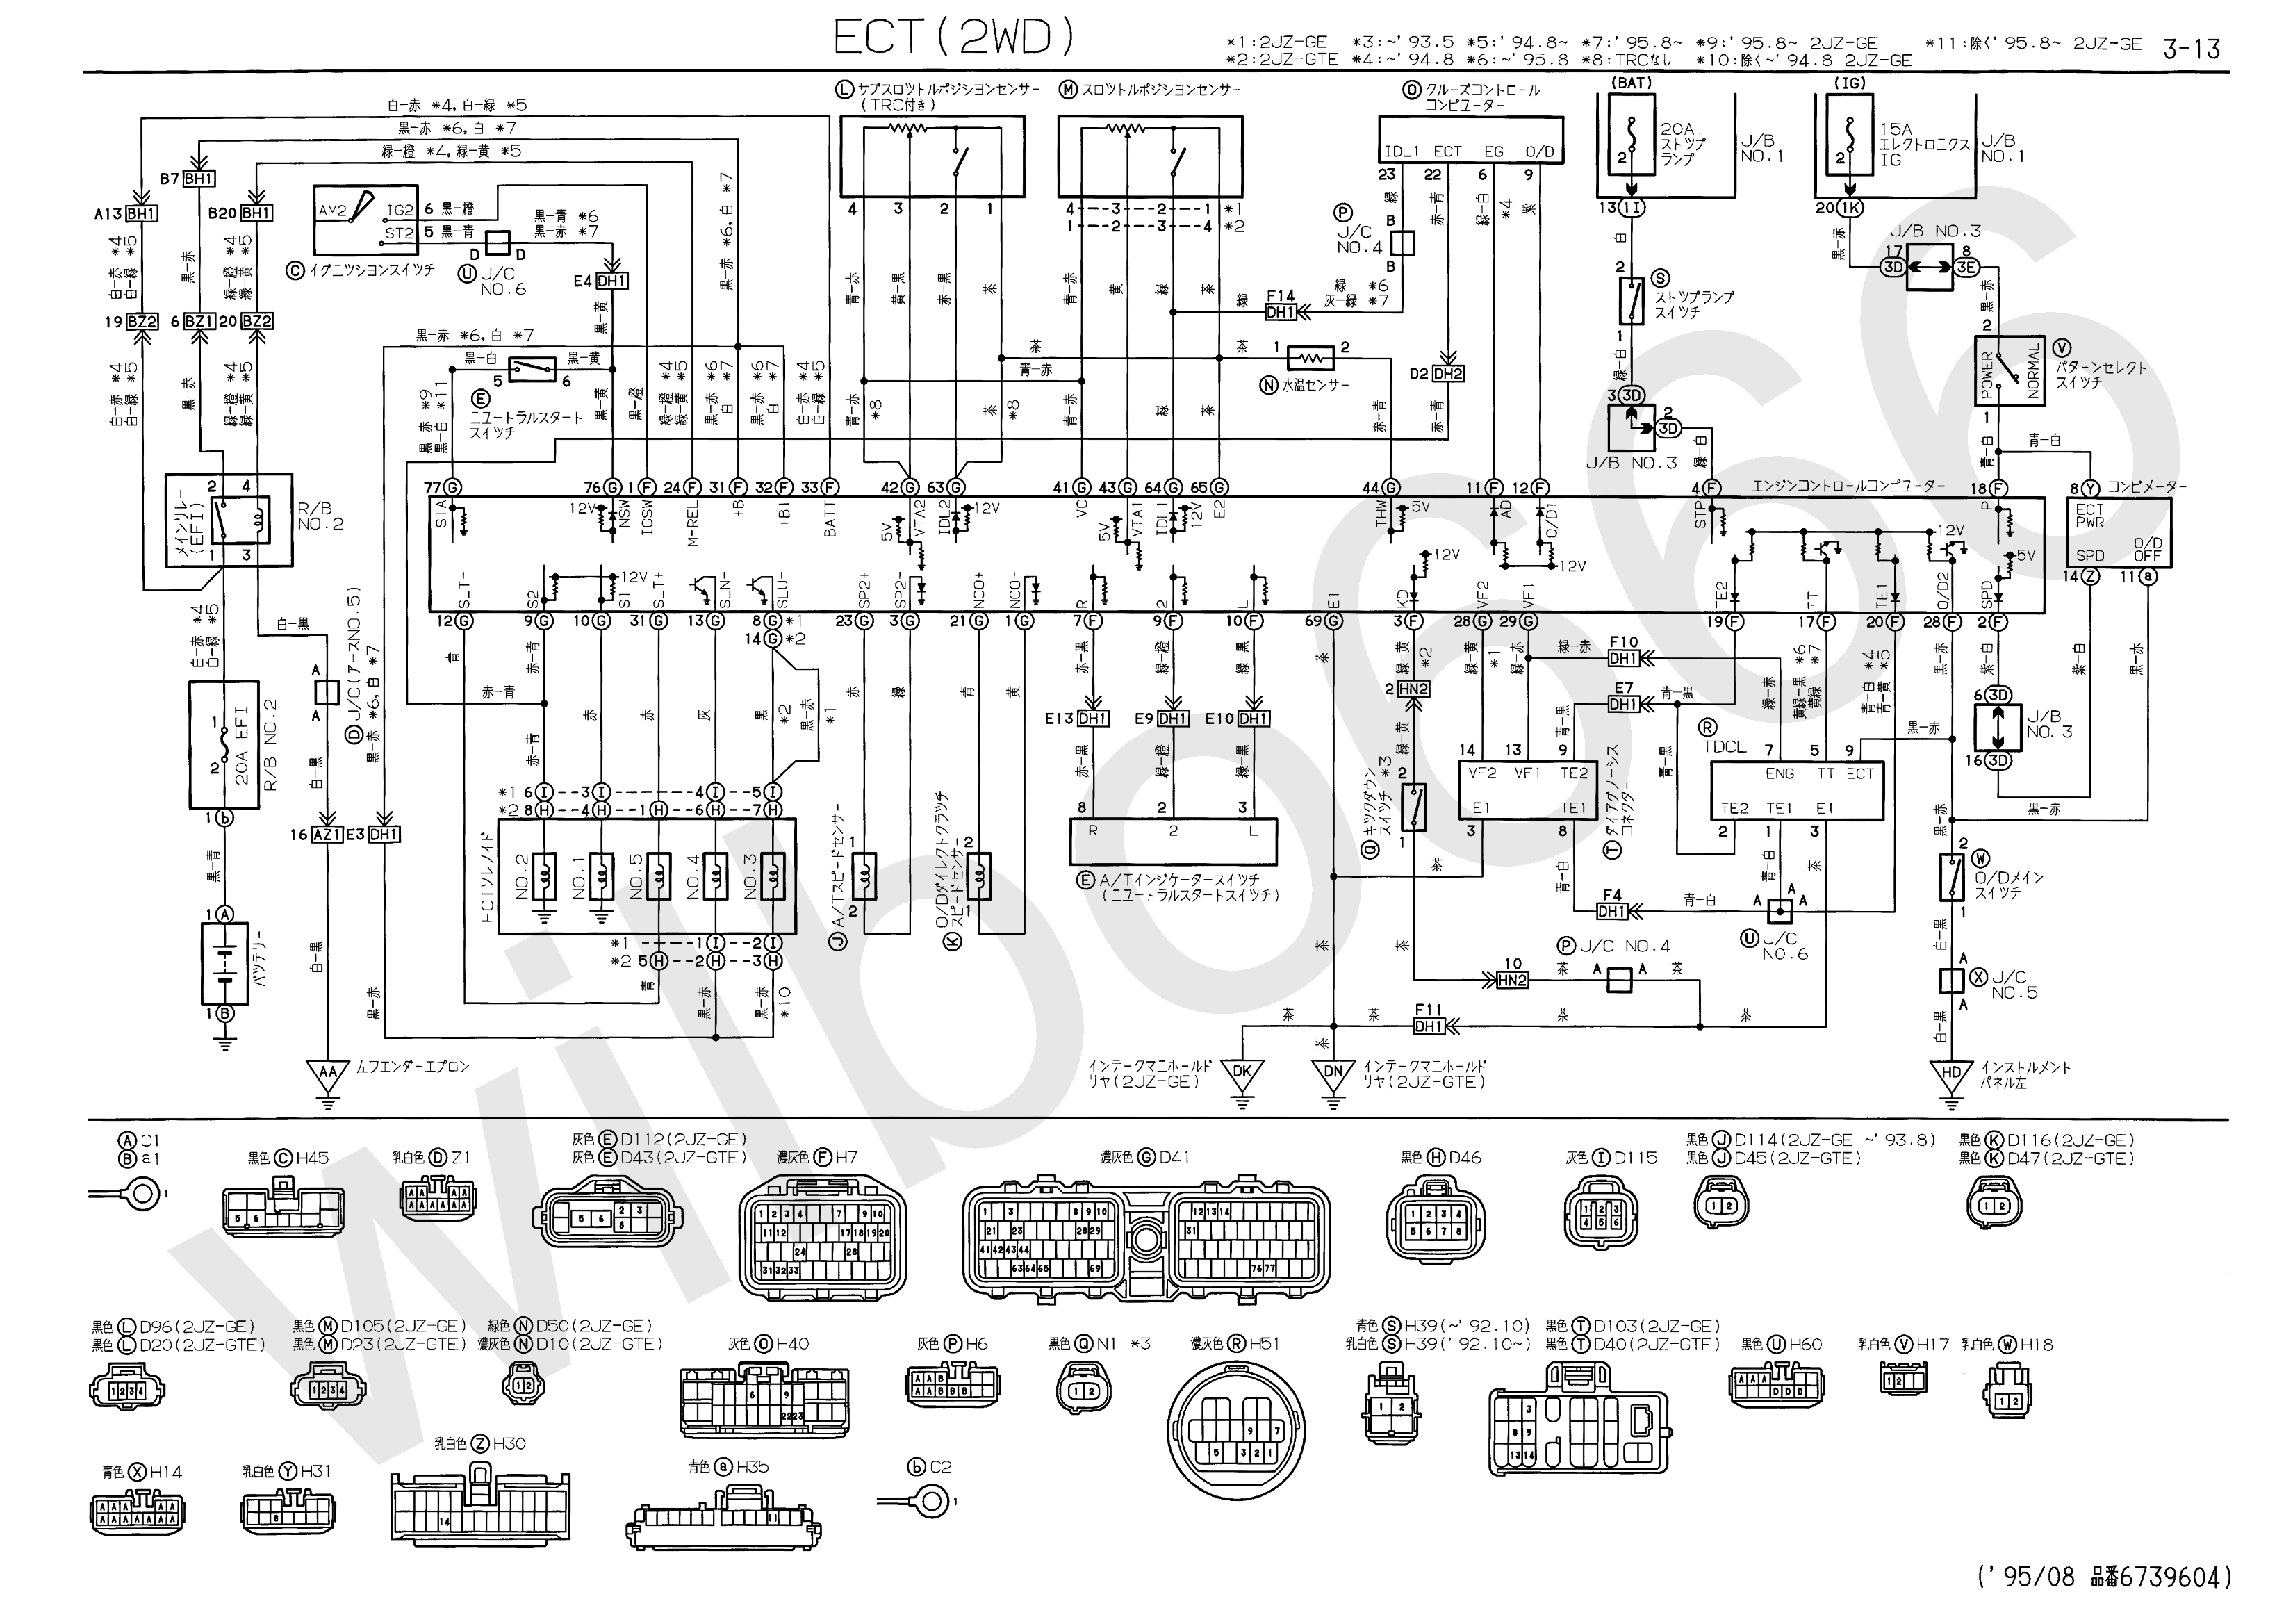 Wiring Diagram Chrysler Grand Voyager free download wiring